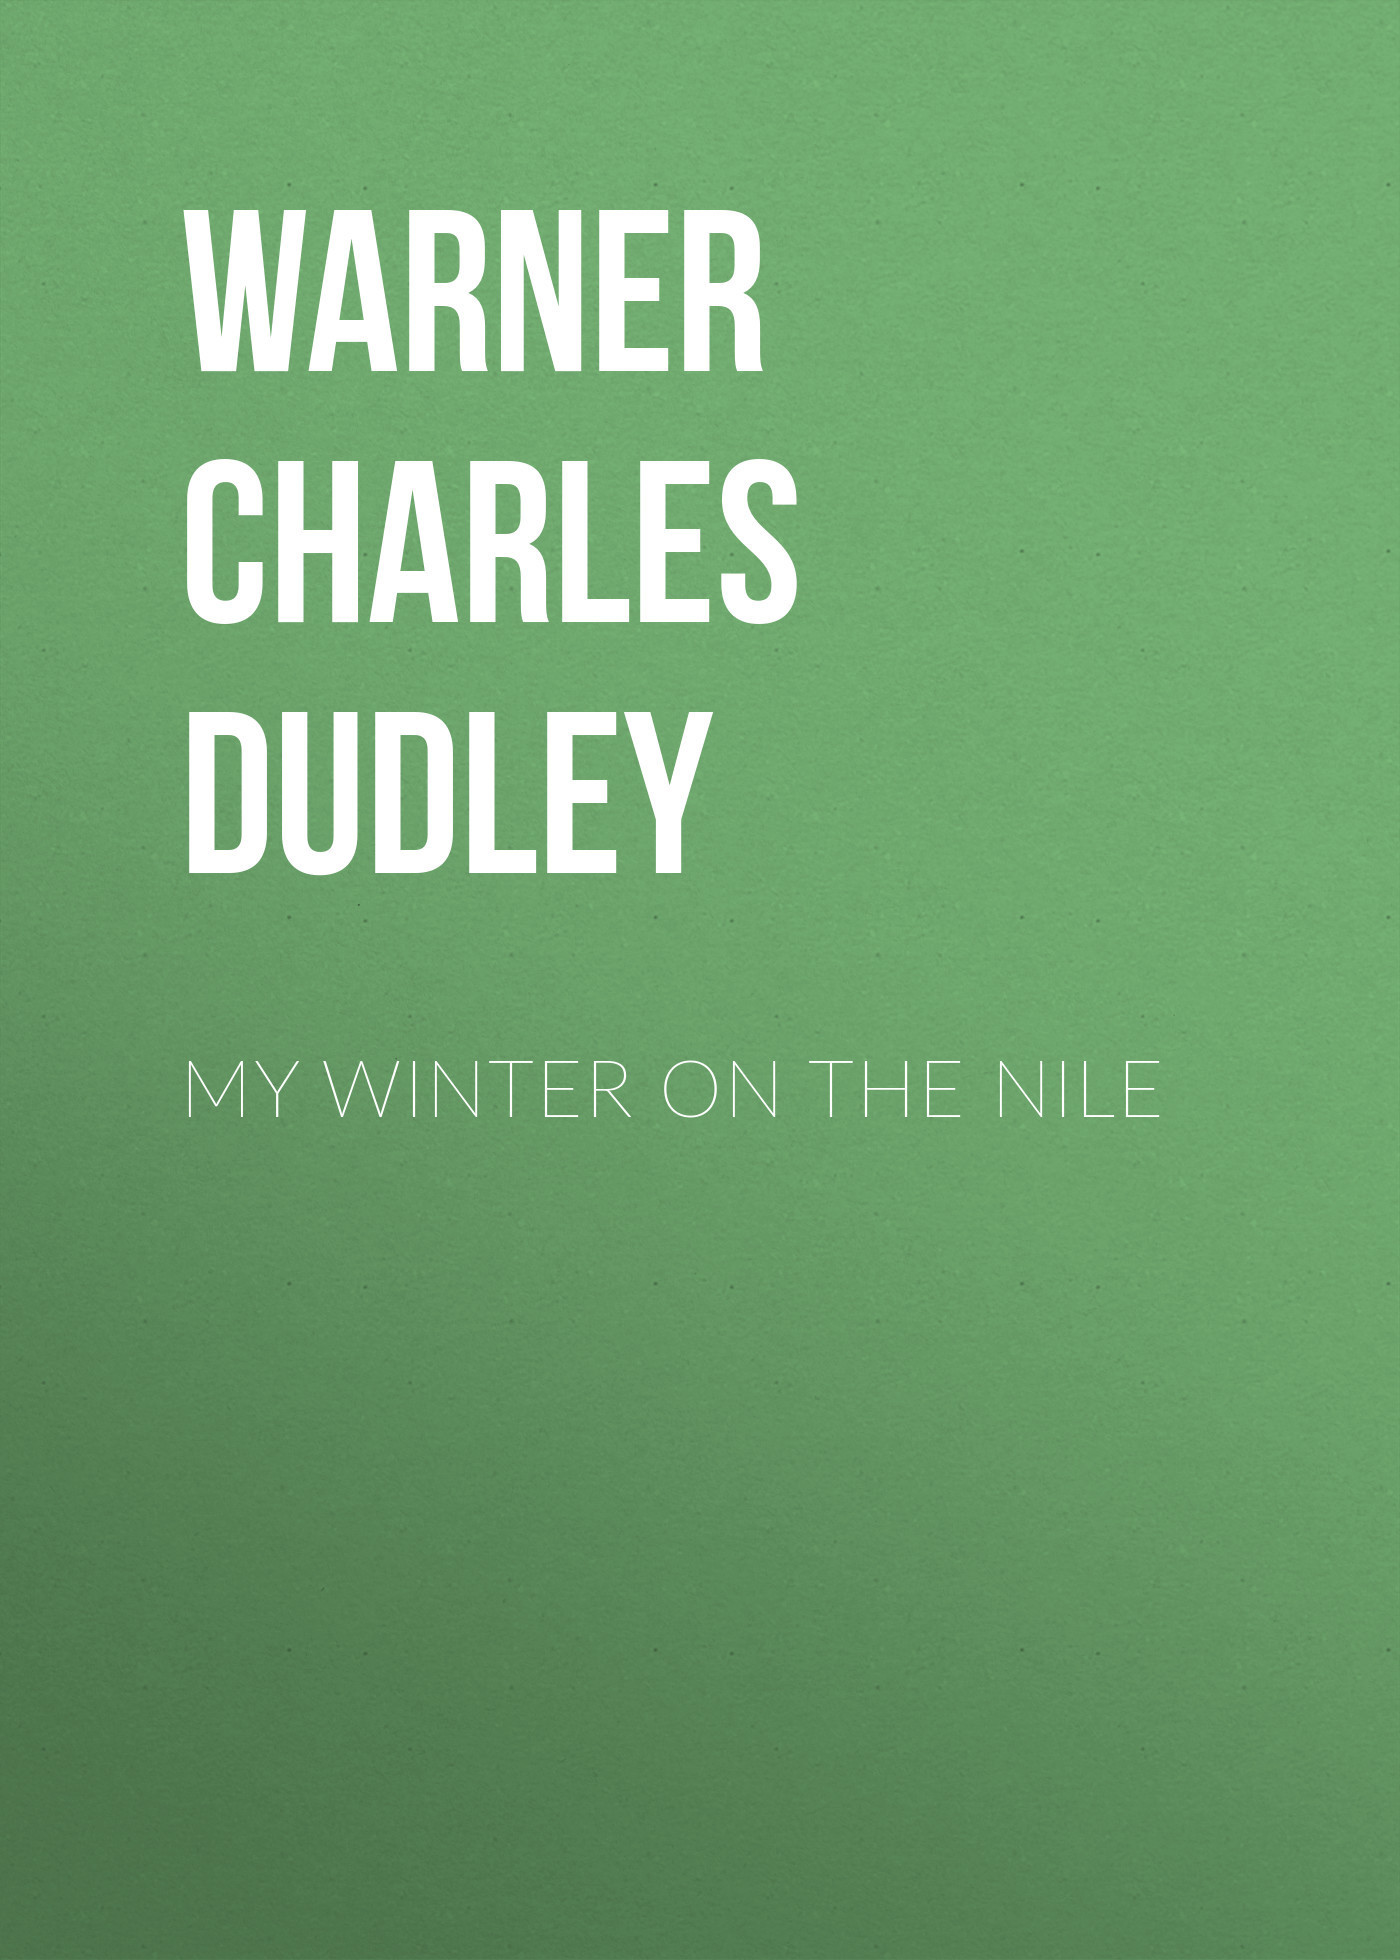 Warner Charles Dudley My Winter on the Nile warner charles dudley in the levant